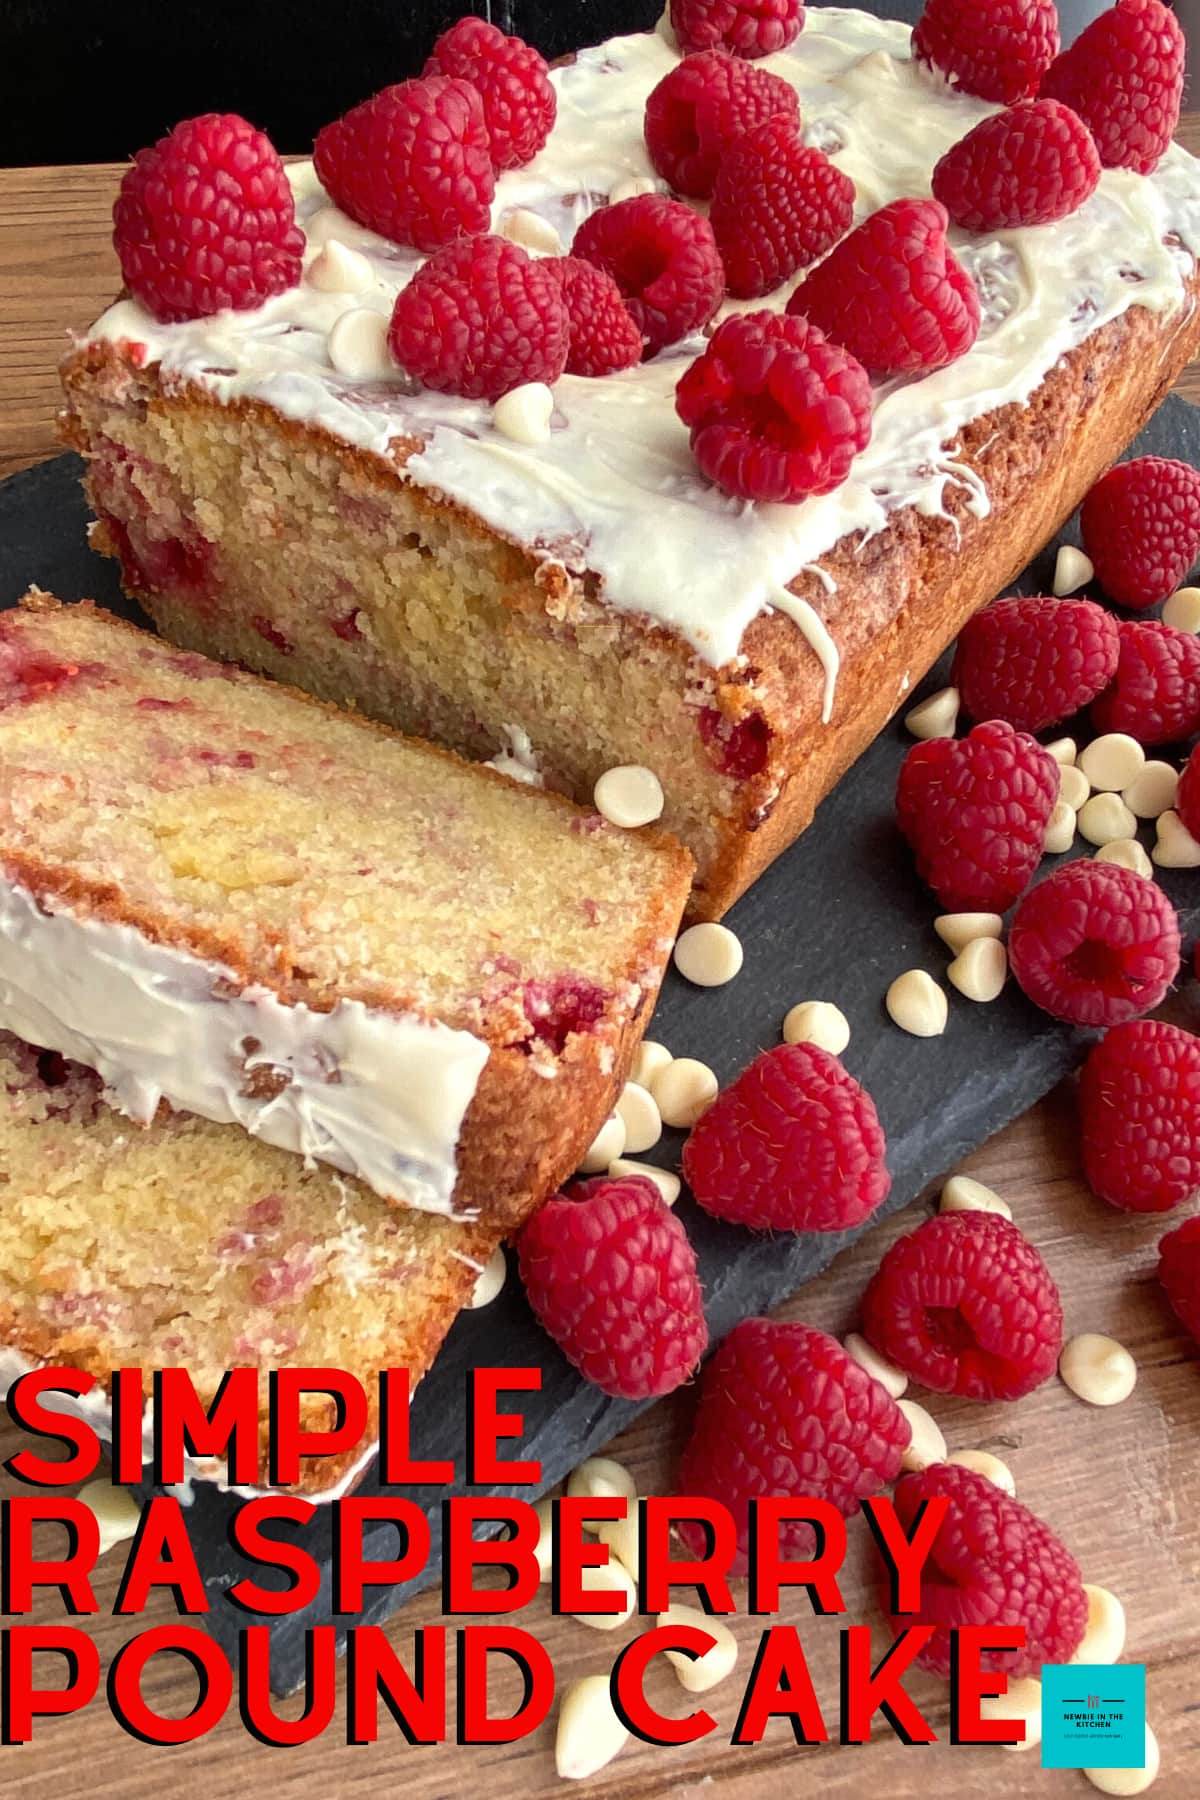 Easy Raspberry Pound Cake. A delicious classic pound cake recipe bursting with fresh raspberries. Soft, moist and tangy sweet. Topped with a simple chocolate topping. Easy to follow instructions